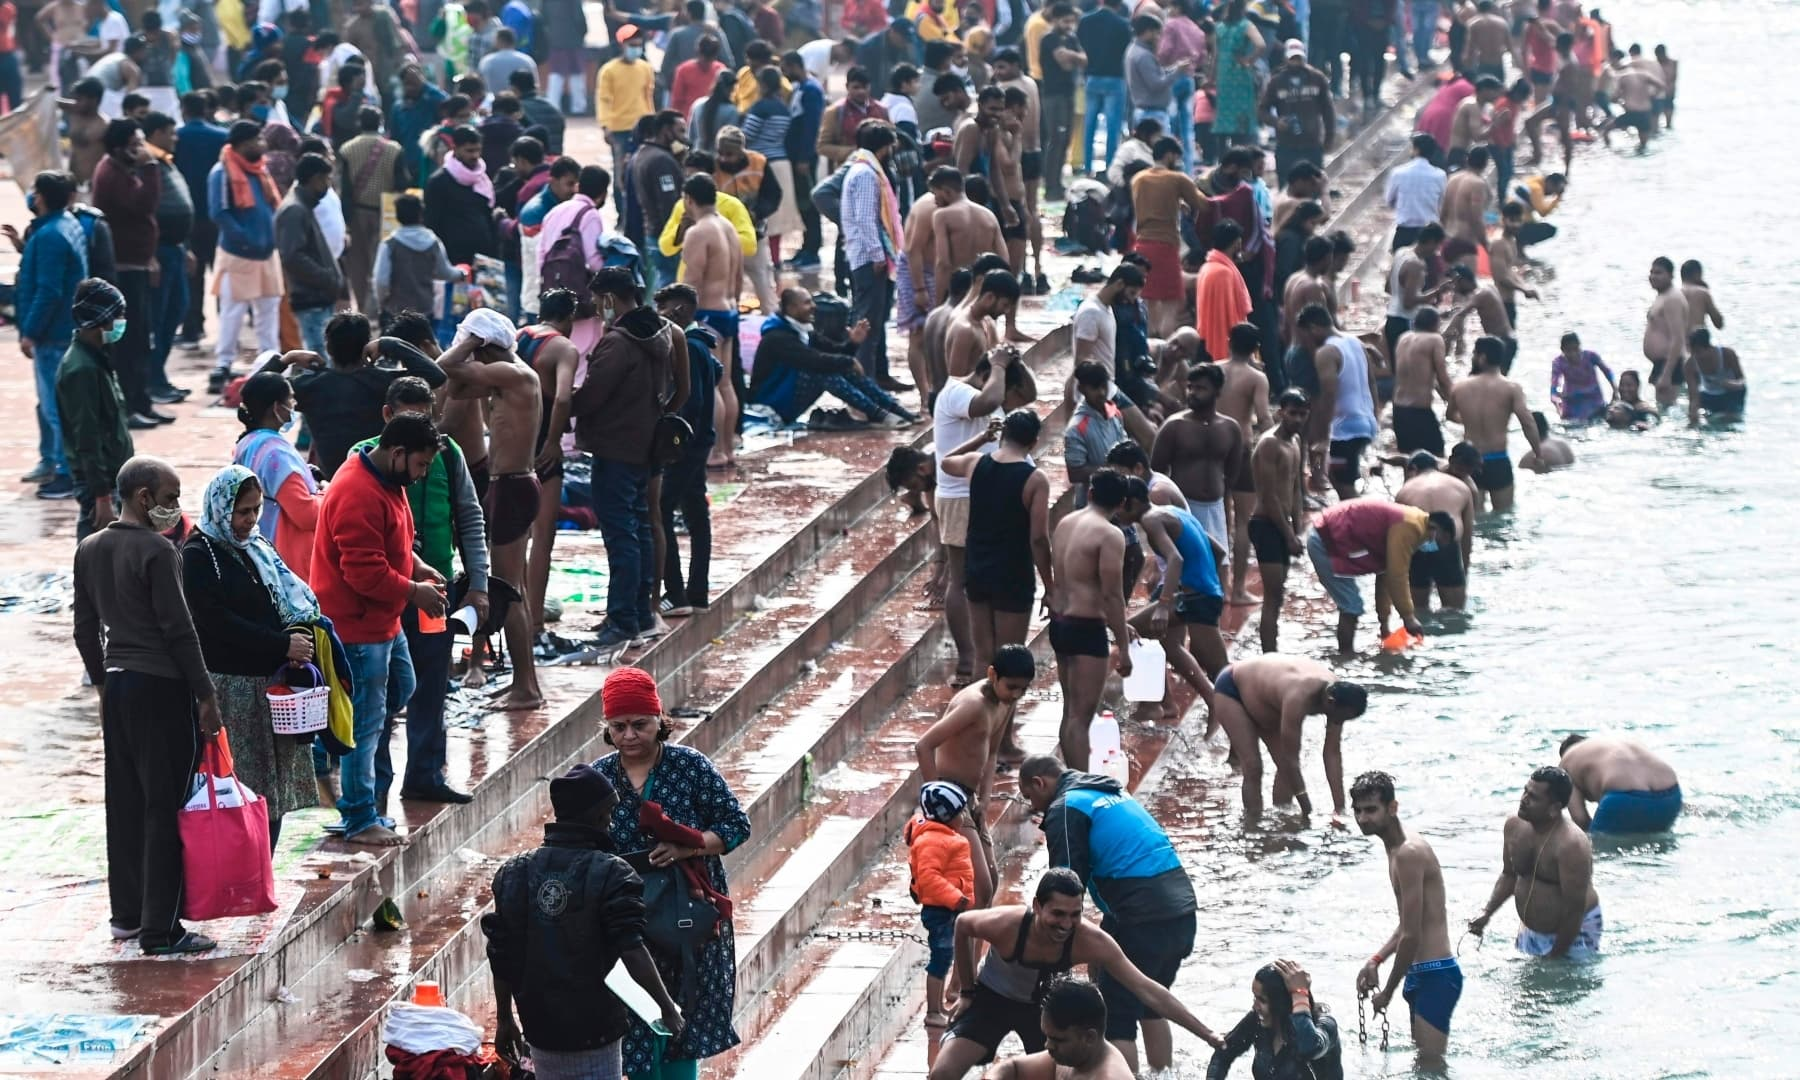 Hindu devotees take a holy dip in the waters of the River Ganges during Makar Sankranti, on the first day of the religious Kumbh Mela festival in Haridwar on January 14. — AFP